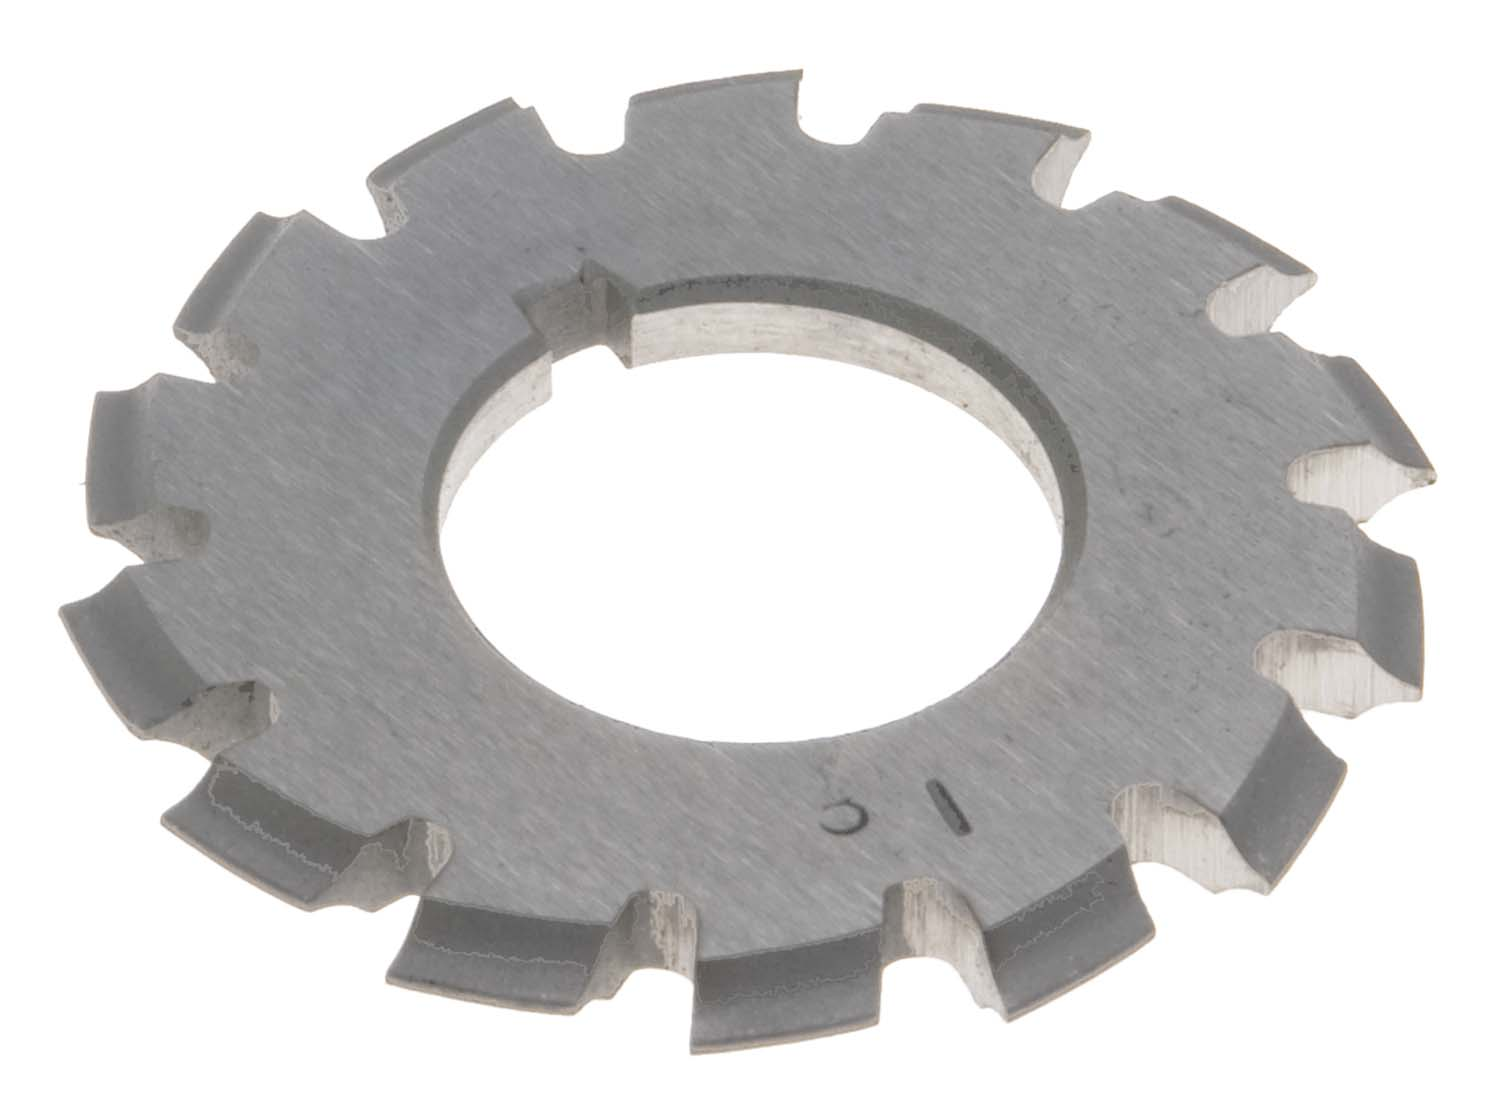 28 Diametral Pitch # 8   Involute Gear Cutter - 7/8 ID - 14-1/2 Degree Pressure Angle